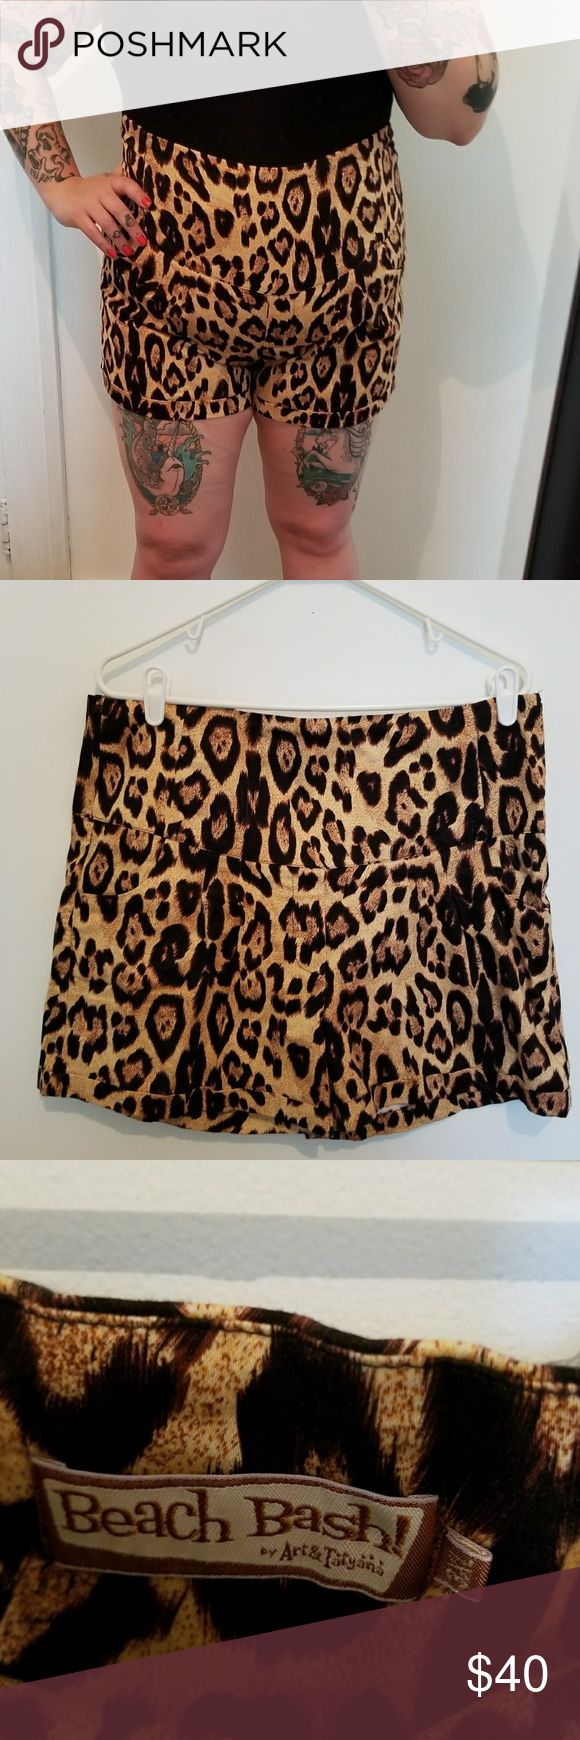 High wasted cheetah shorts Bought from a super cute pin up boutique. Although the size says 3x it fits like a size 16. art&tatyana Shorts